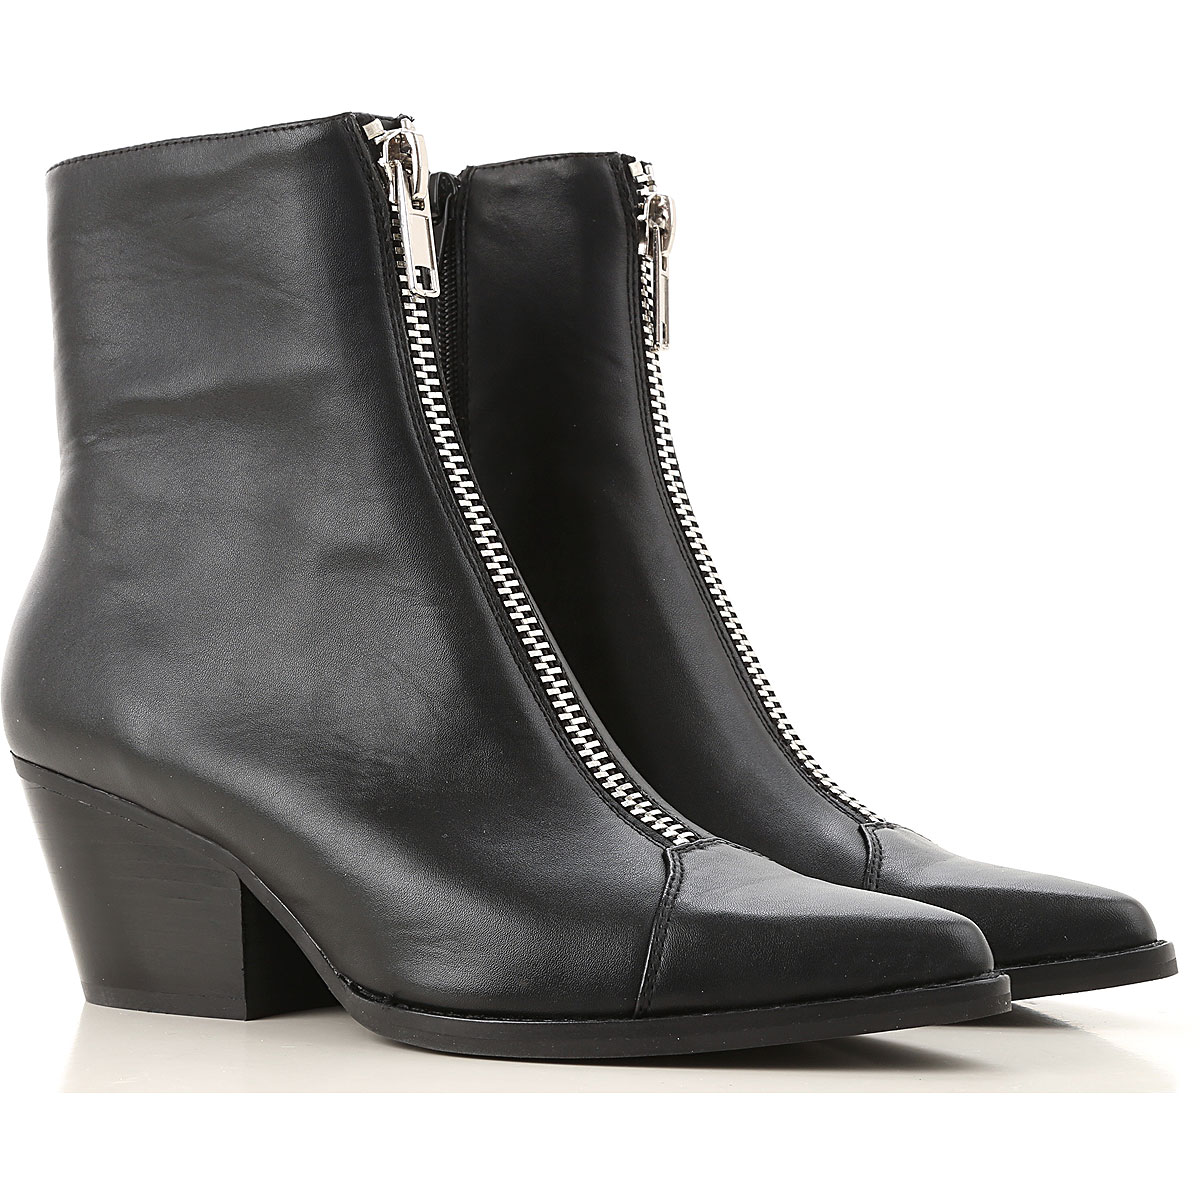 Jeffrey Campbell Boots for Women, Booties On Sale, Black, Synthetic Leather, 2019, 10 11 6 7 9